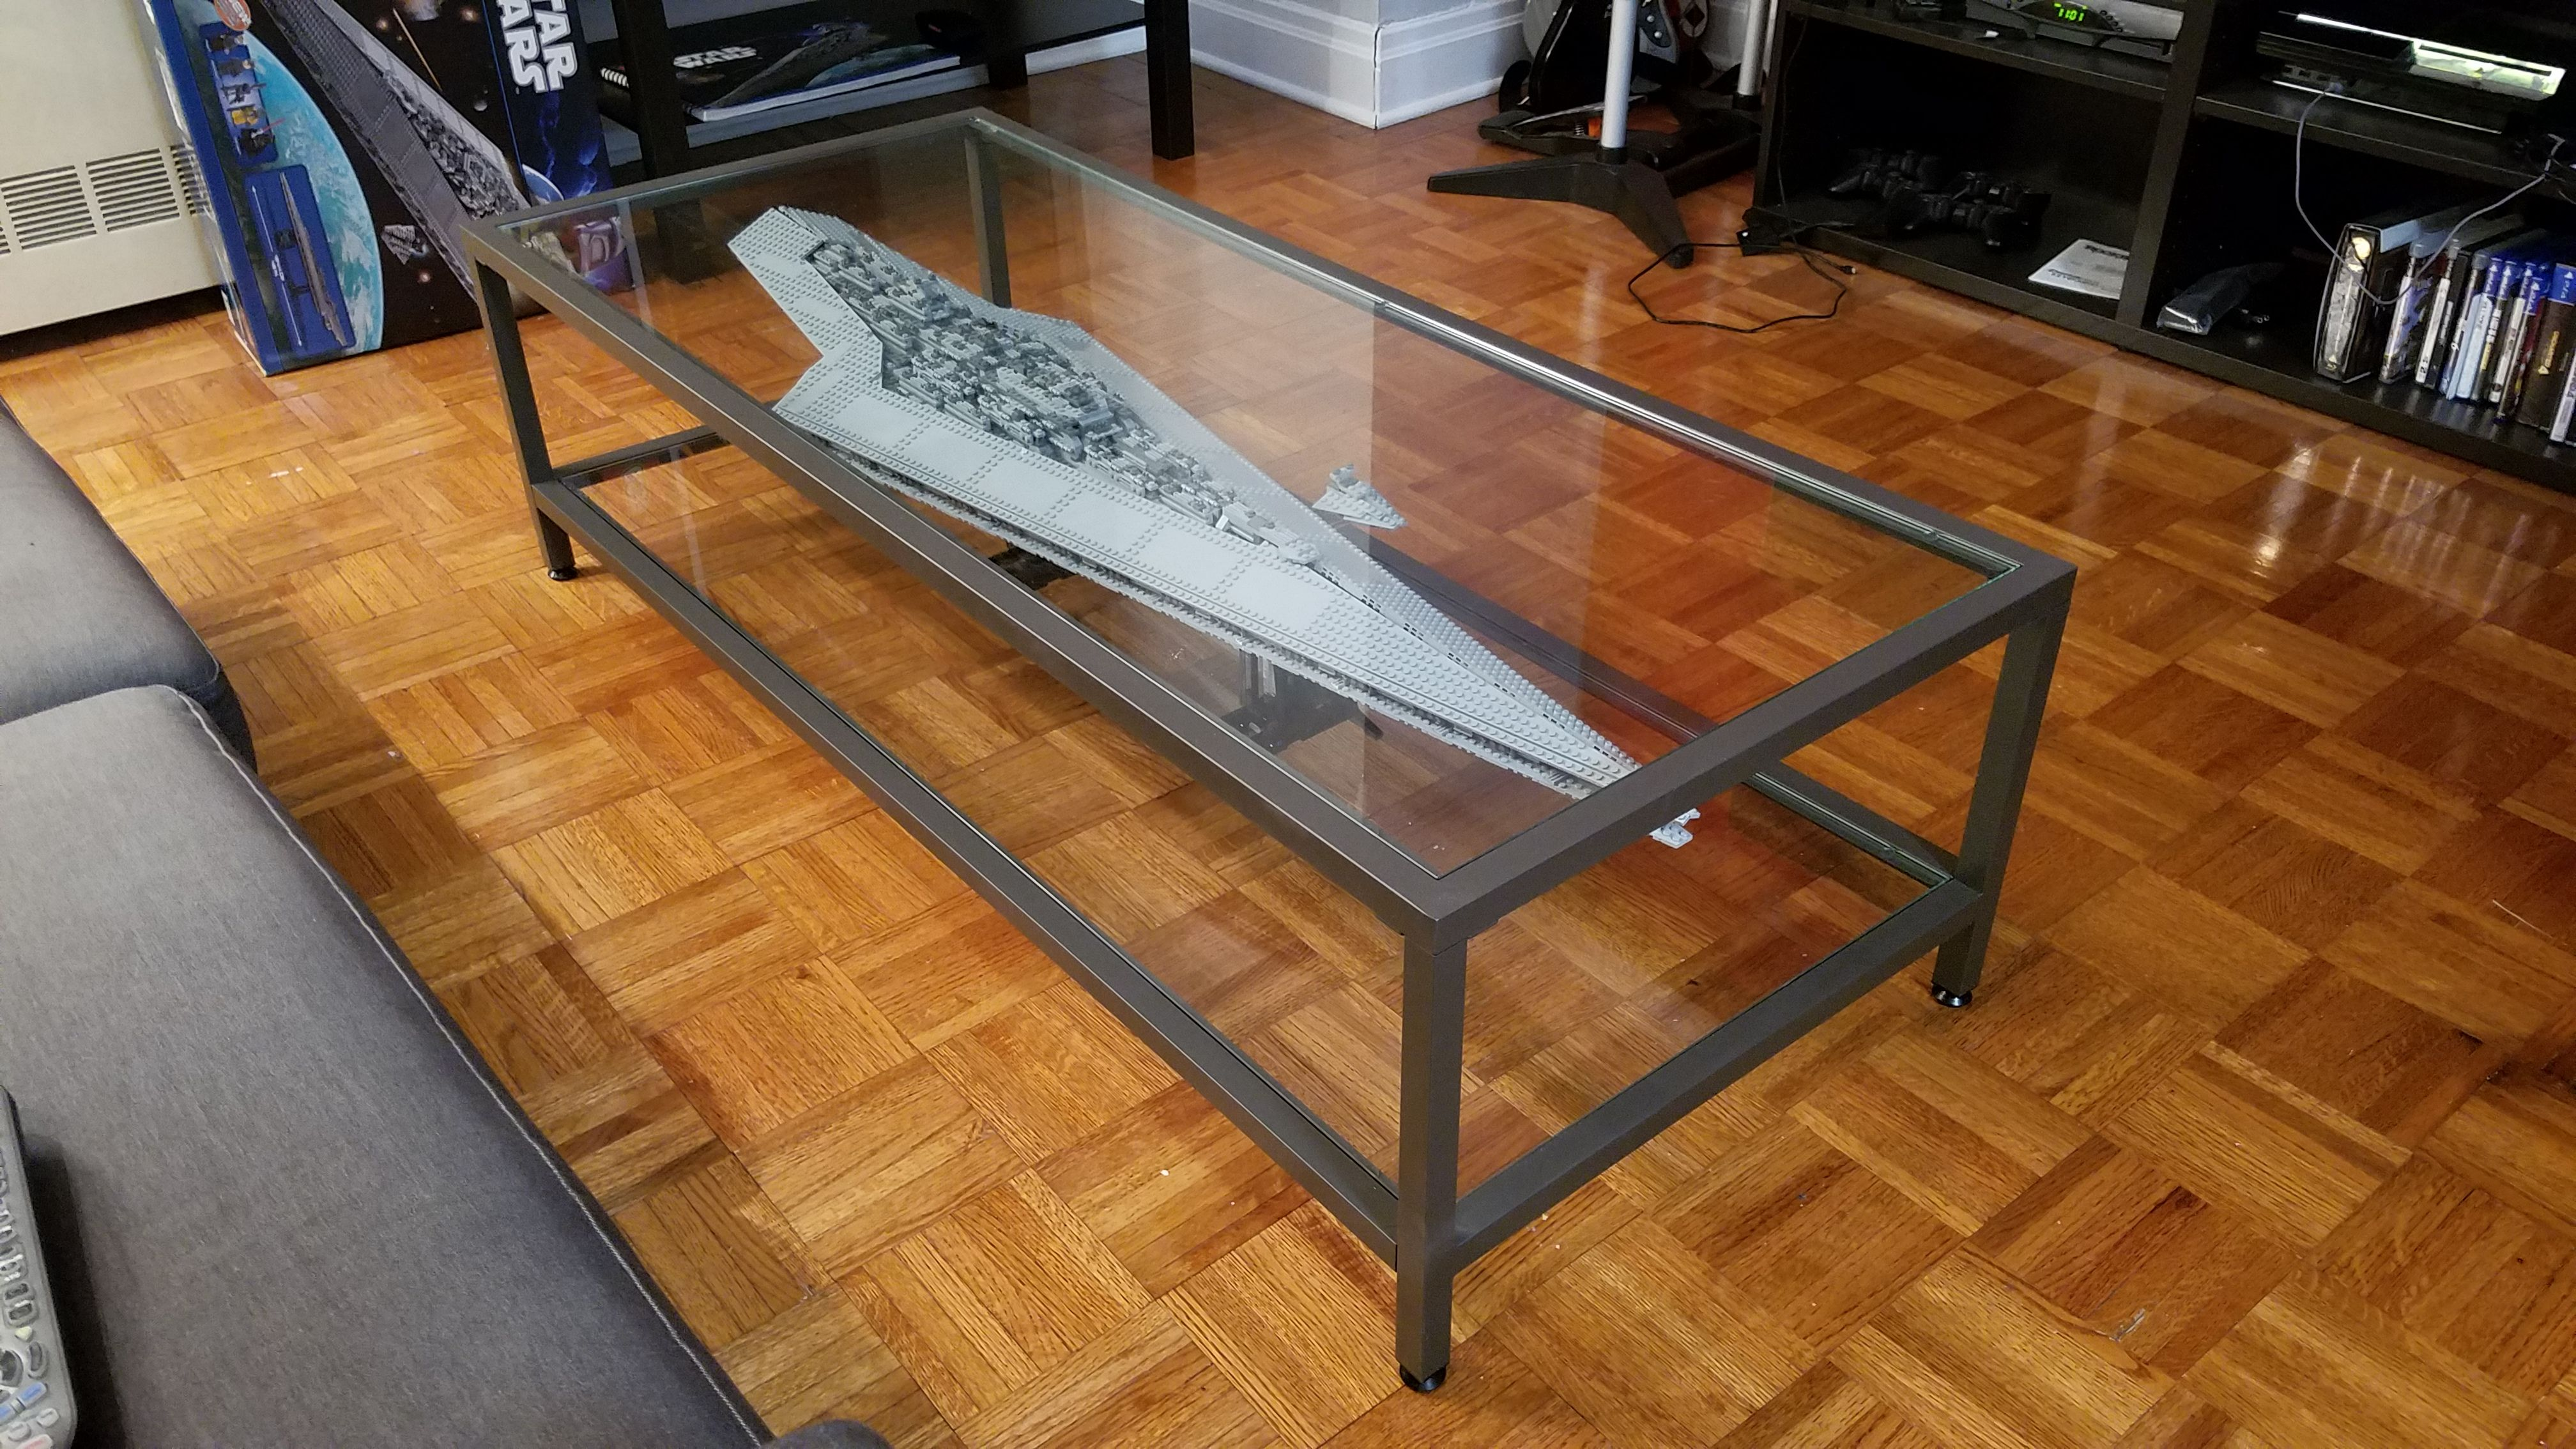 Couchtisch Millennium Falcon Image Result For Coffee Table With Lego Millenium Falcon Living